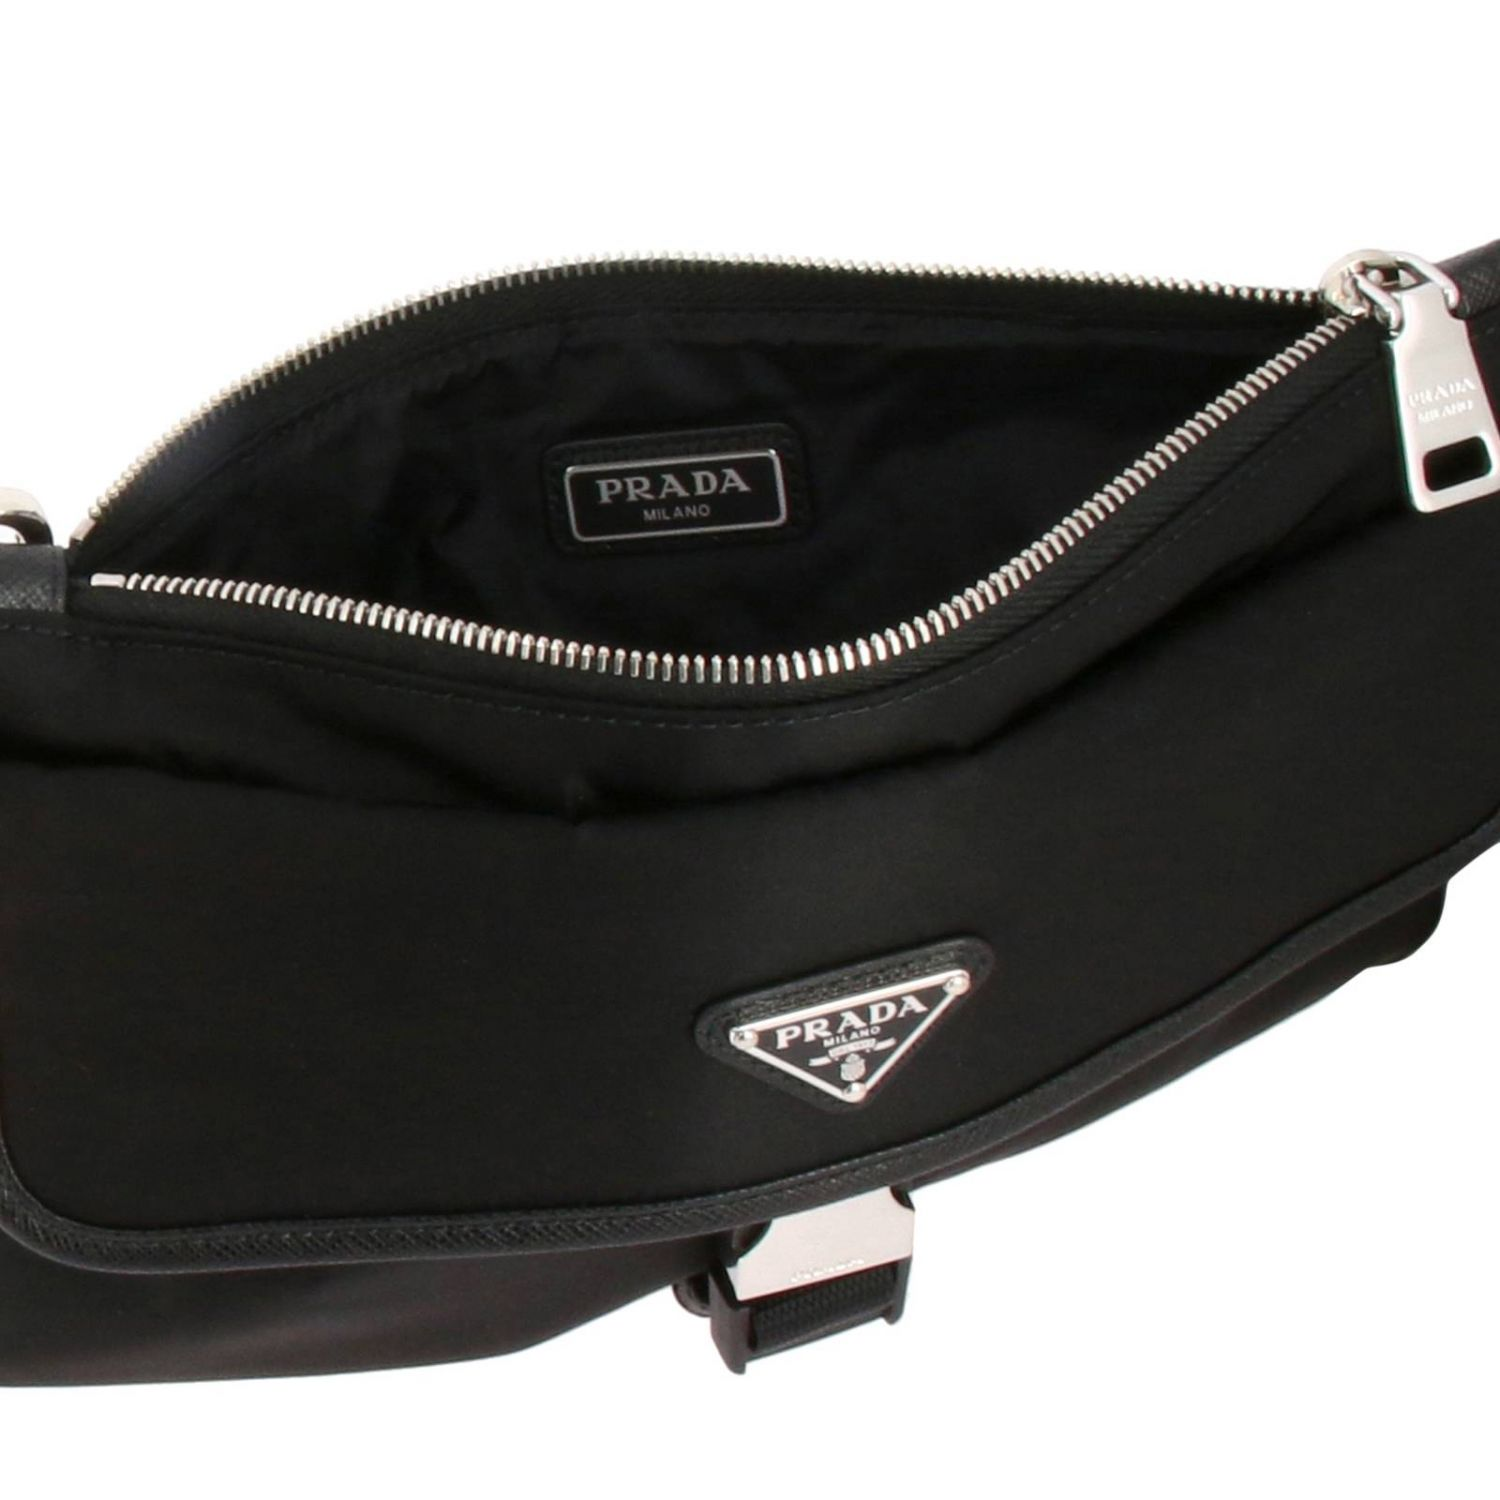 Prada nylon clutch bag with triangular logo and buckle black 5